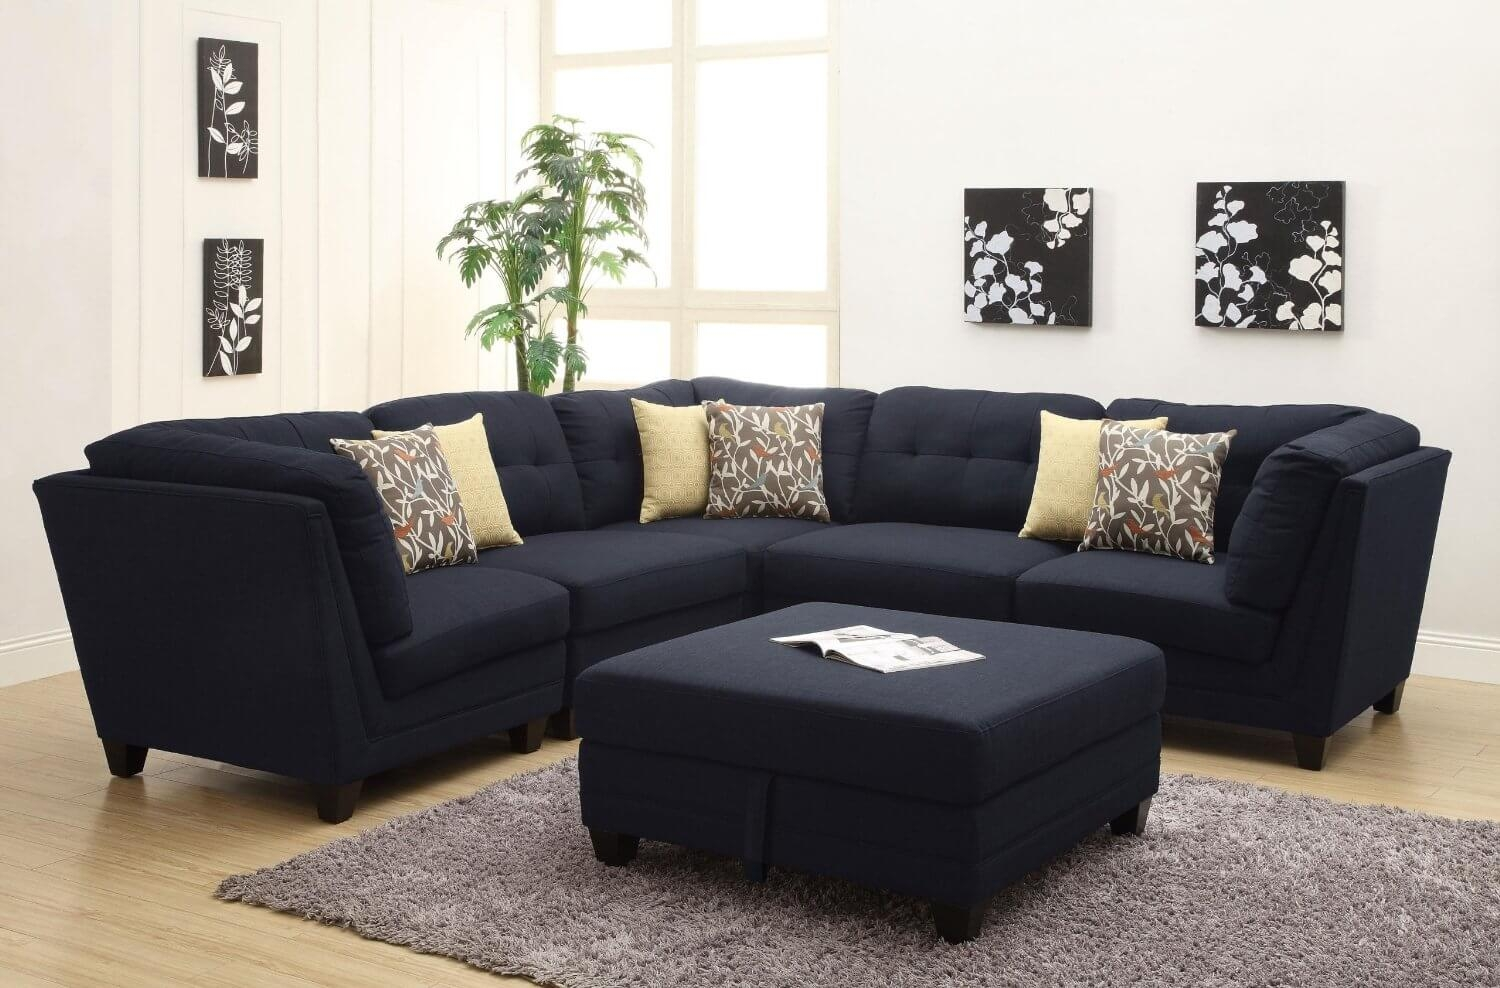 Sofas Center High Quality Sectional Sofas Cleanupflorida Com Intended For Abbyson Living Charlotte Beige Sectional Sofa And Ottoman (Image 15 of 15)